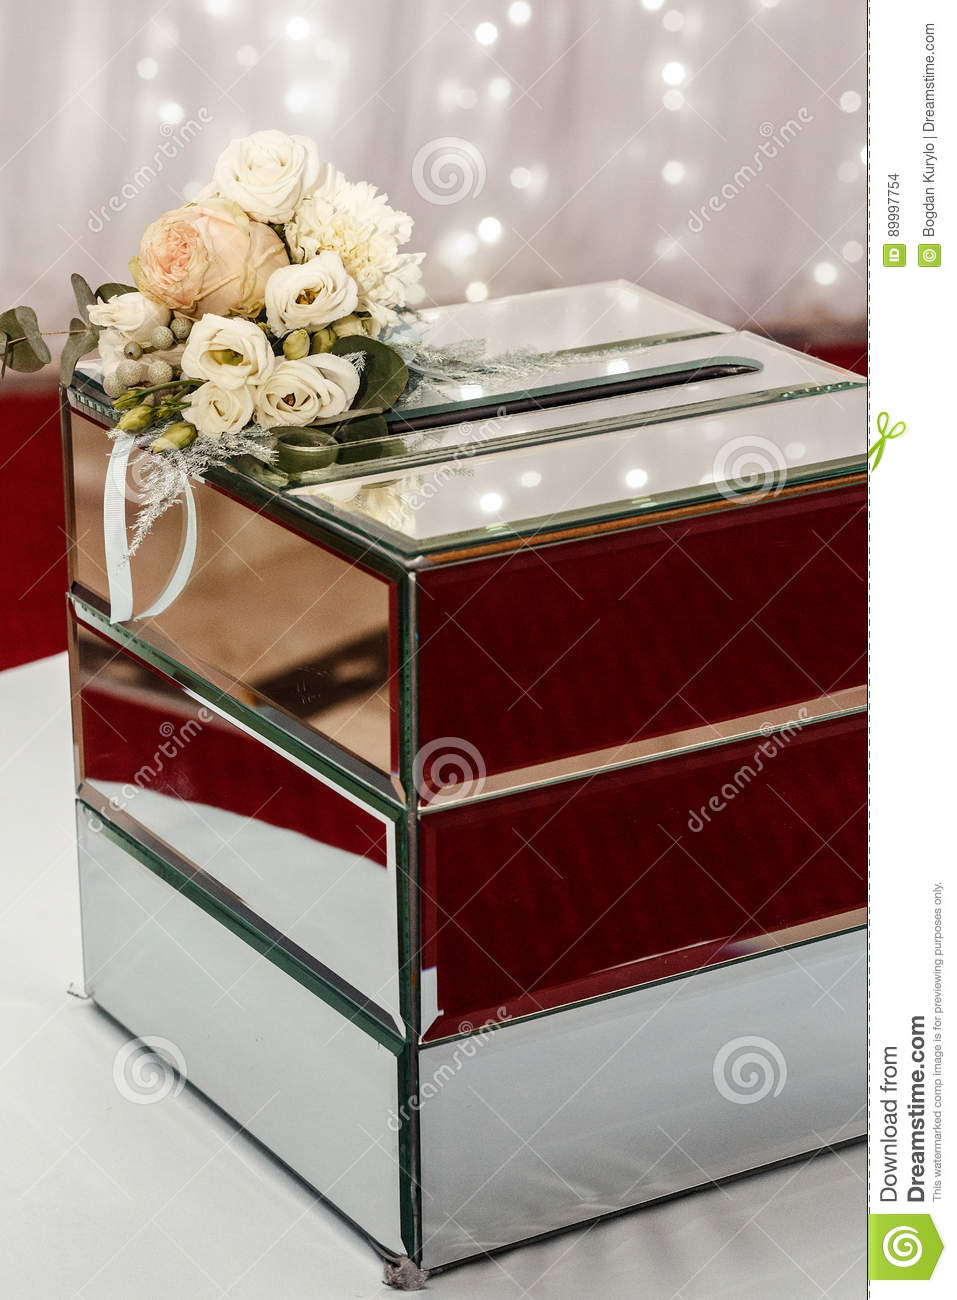 Luxury Wedding Gift Box With Roses And Expensive Golden Decor Ar